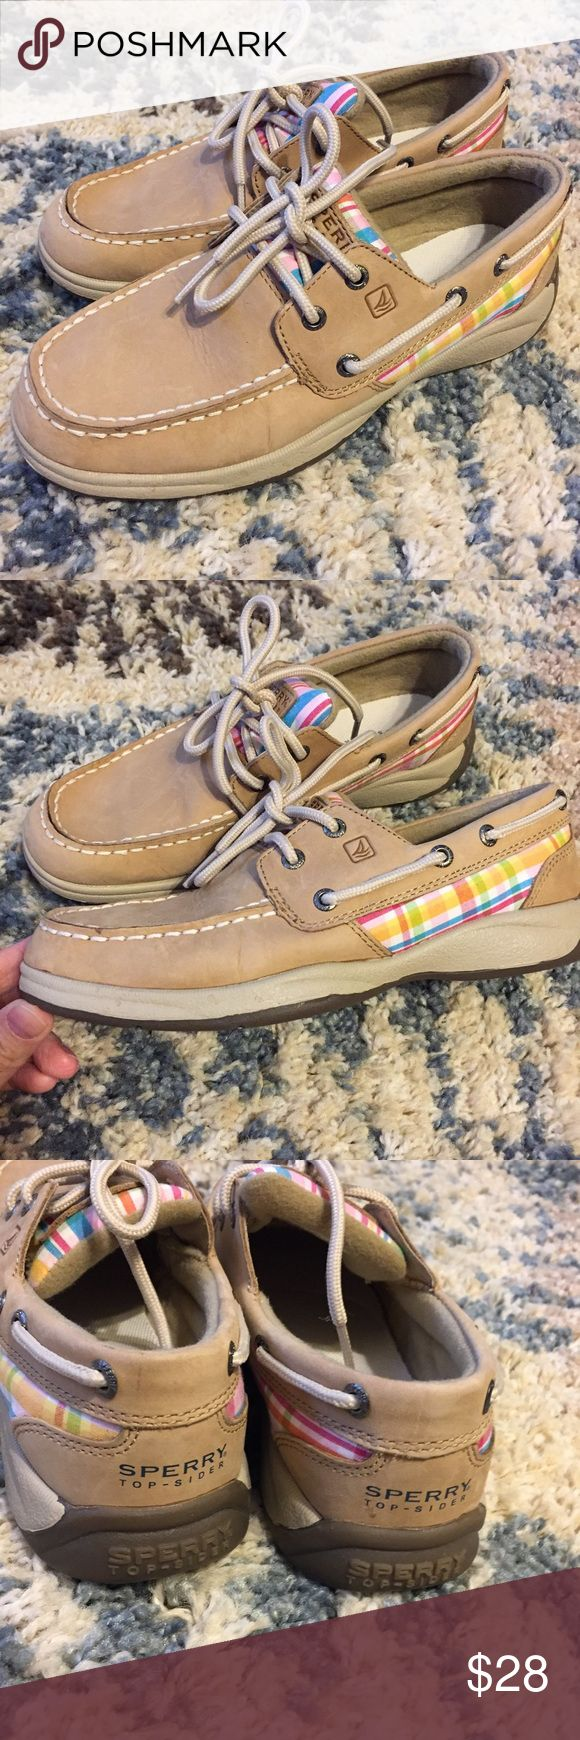 Girls Sperrys! Girls leather sperrys! So cute tan leather with pink plaid accents! Worn only a few times! Over all really great condition! Girls size 3. Sperry Top-Sider Shoes